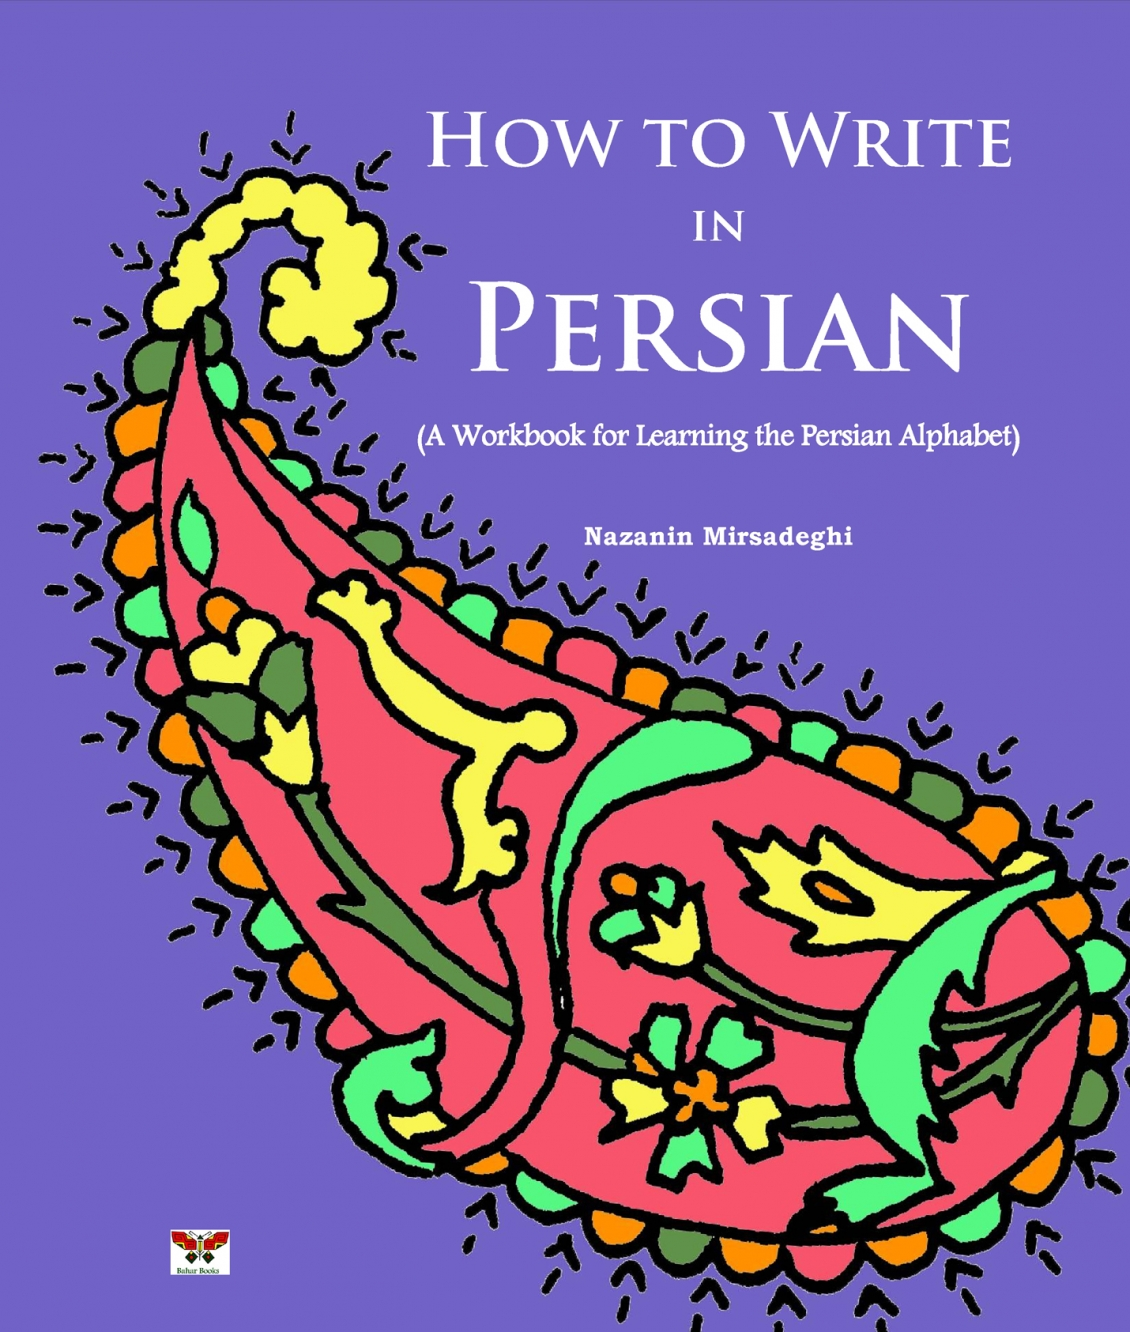 Bahar Books - How to Write in Persian (A Workbook for Learning the ...